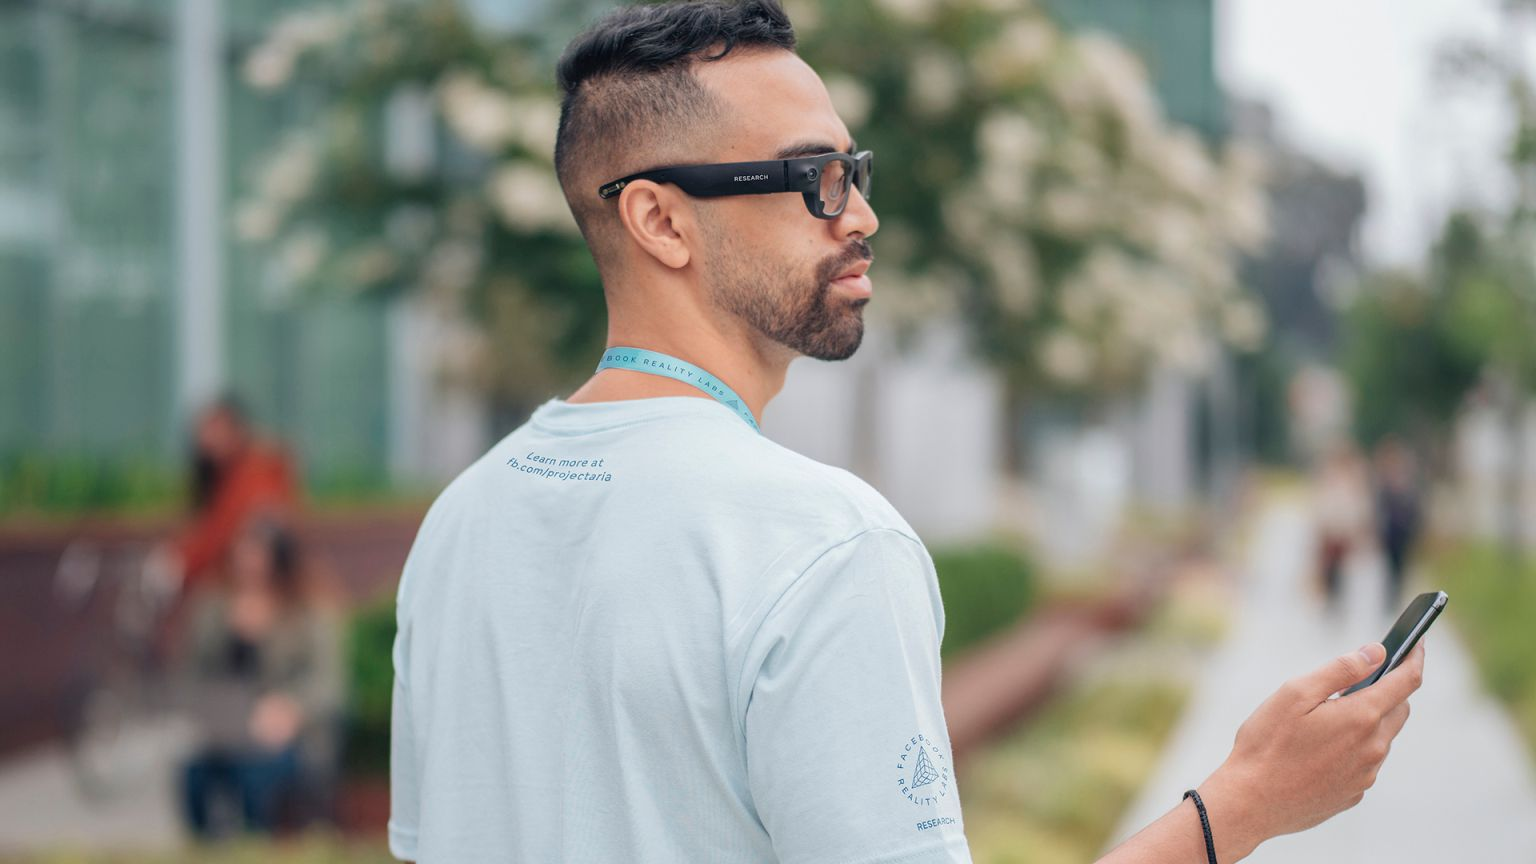 Facebook AR researcher wearing Project Aria glasses